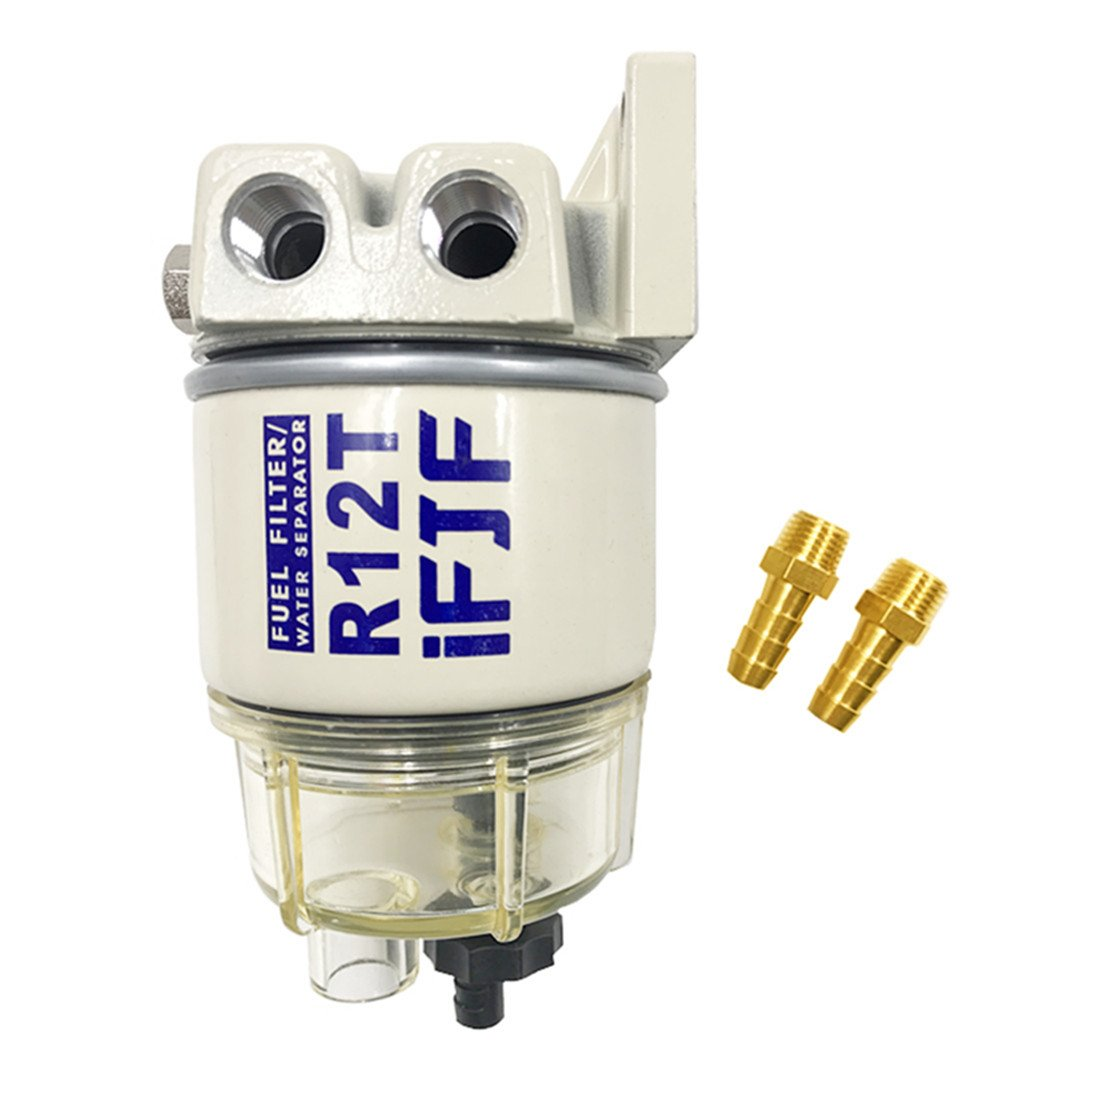 Fuel Water Separators System Automotive 2006 Dodge Ram Filter Location Ifjf R12t Separator 120at Npt Zg1 4 19 Parts